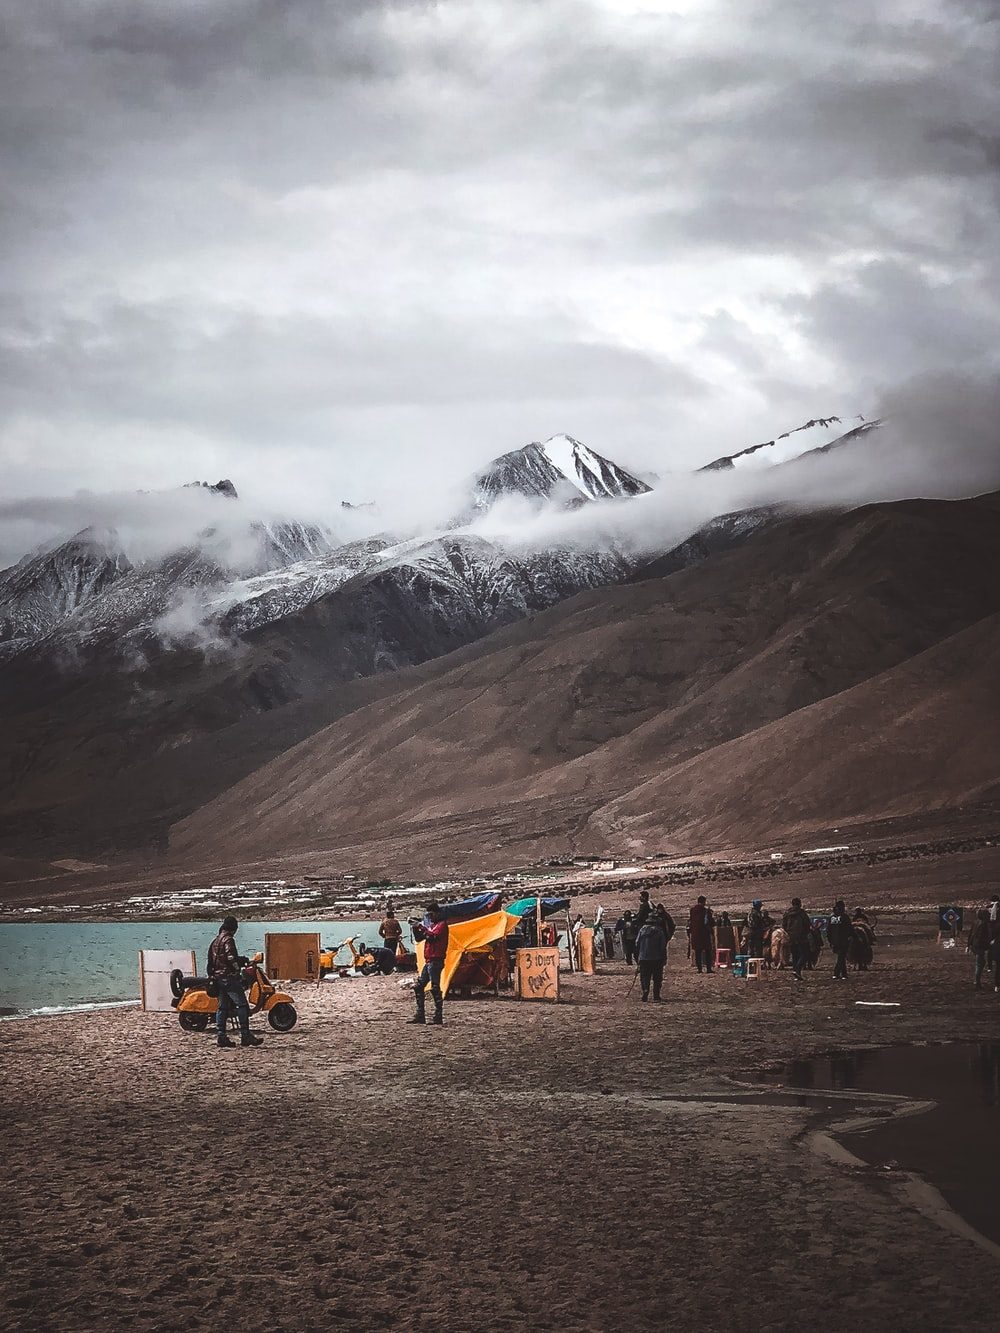 group of person beside mountain under cloudy sky